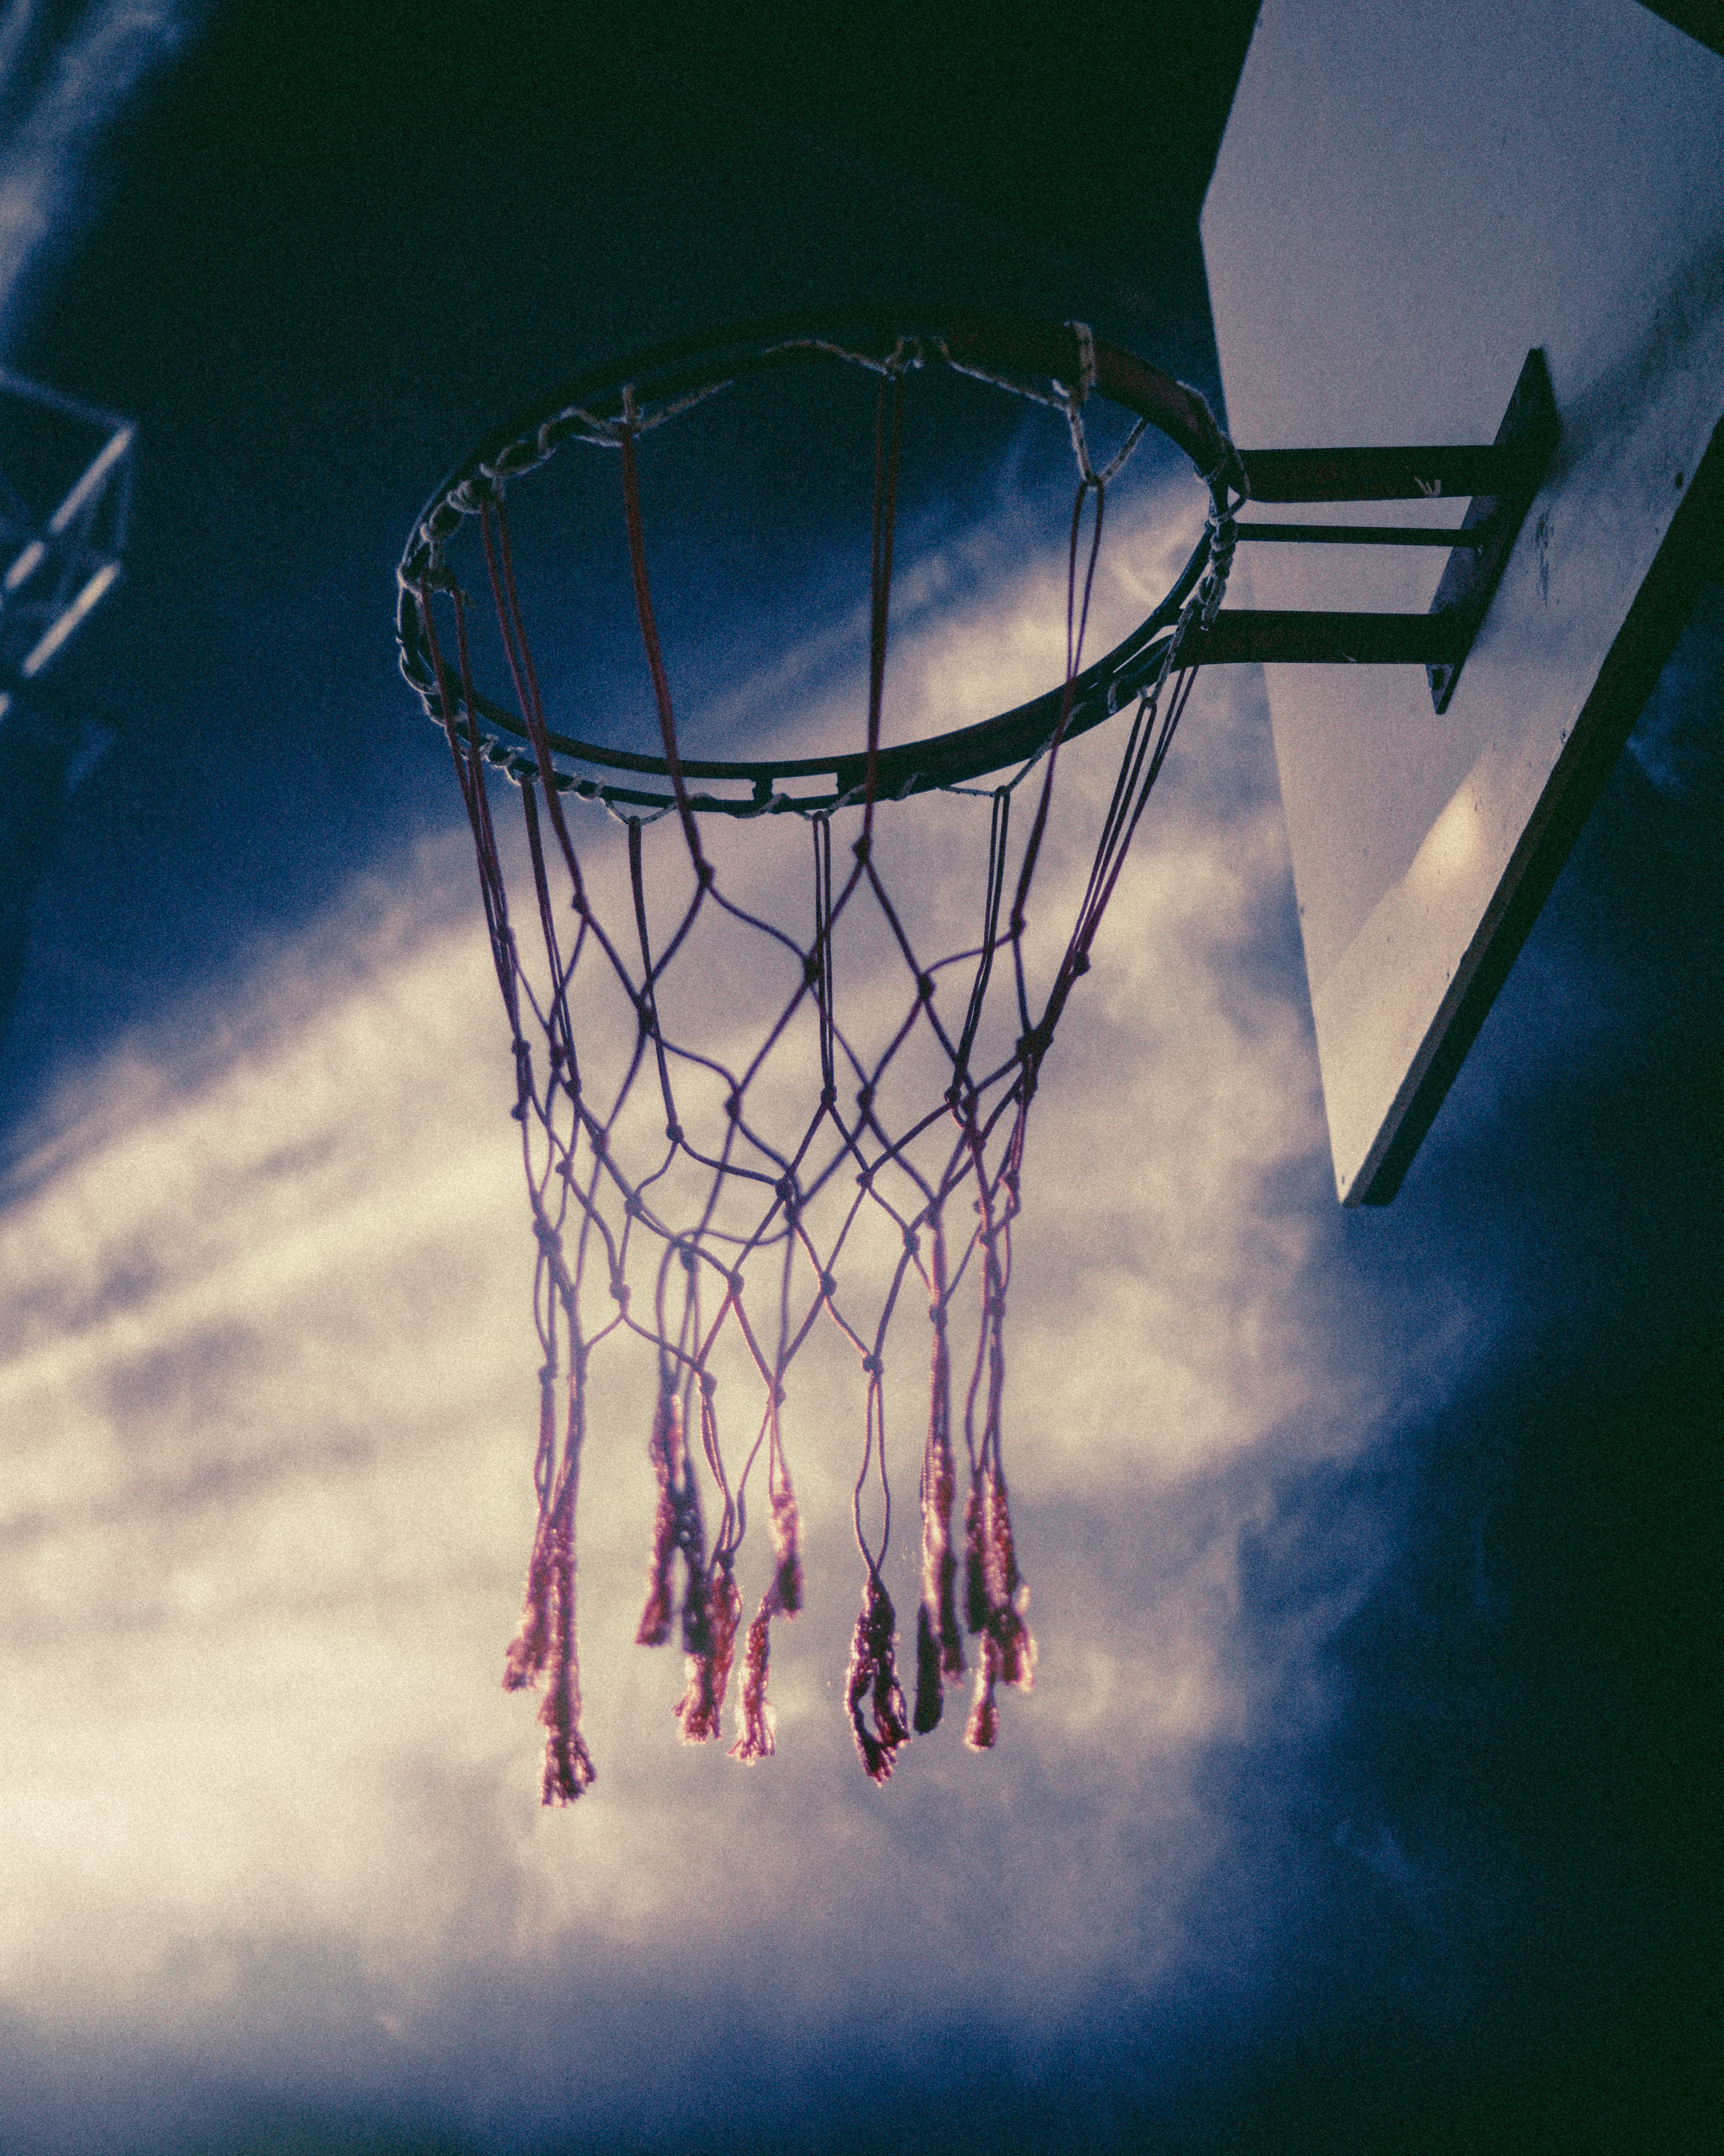 100047 Screensavers and Wallpapers Basketball for phone. Download Words, Basketball, Basketball Net, Basketball Grid, Basketball Hoop, Basketball Ring, Basketball Backboard, Basketball Shield, Sky pictures for free